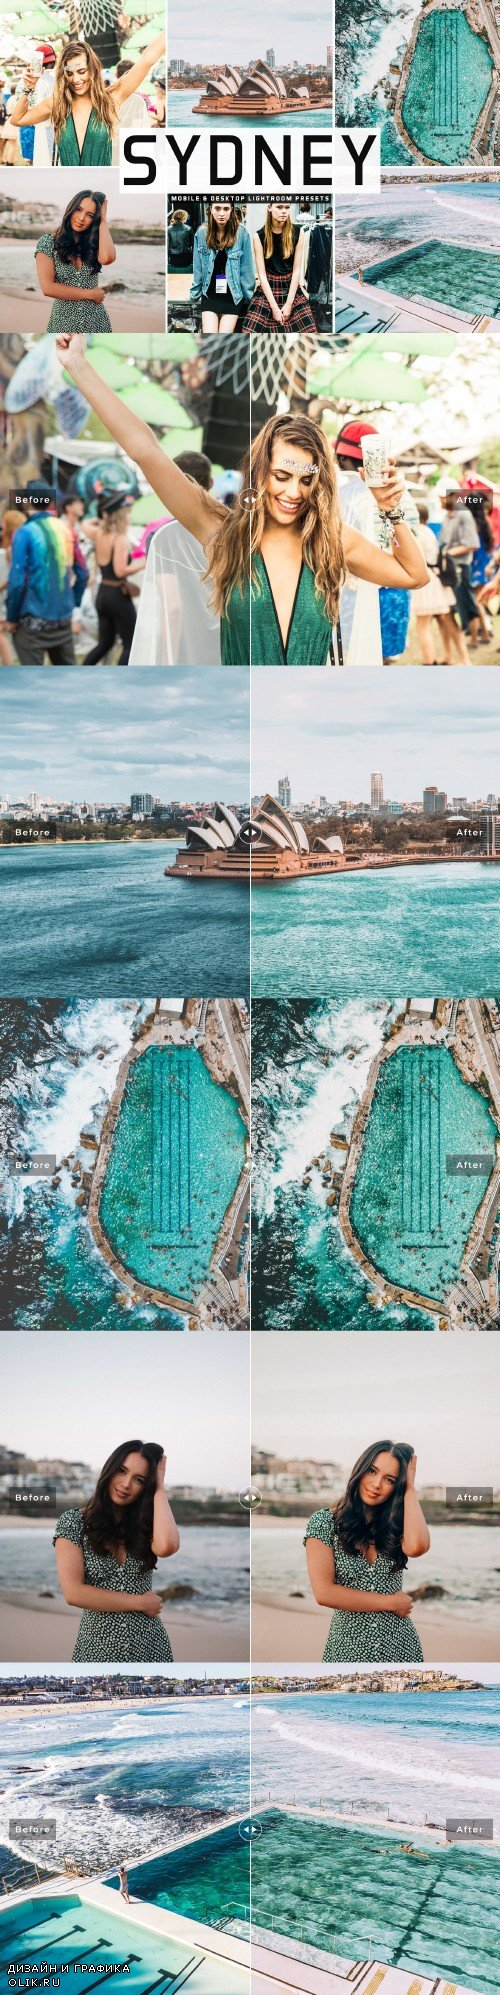 Sydney Lightroom Presets Pack - 3993500